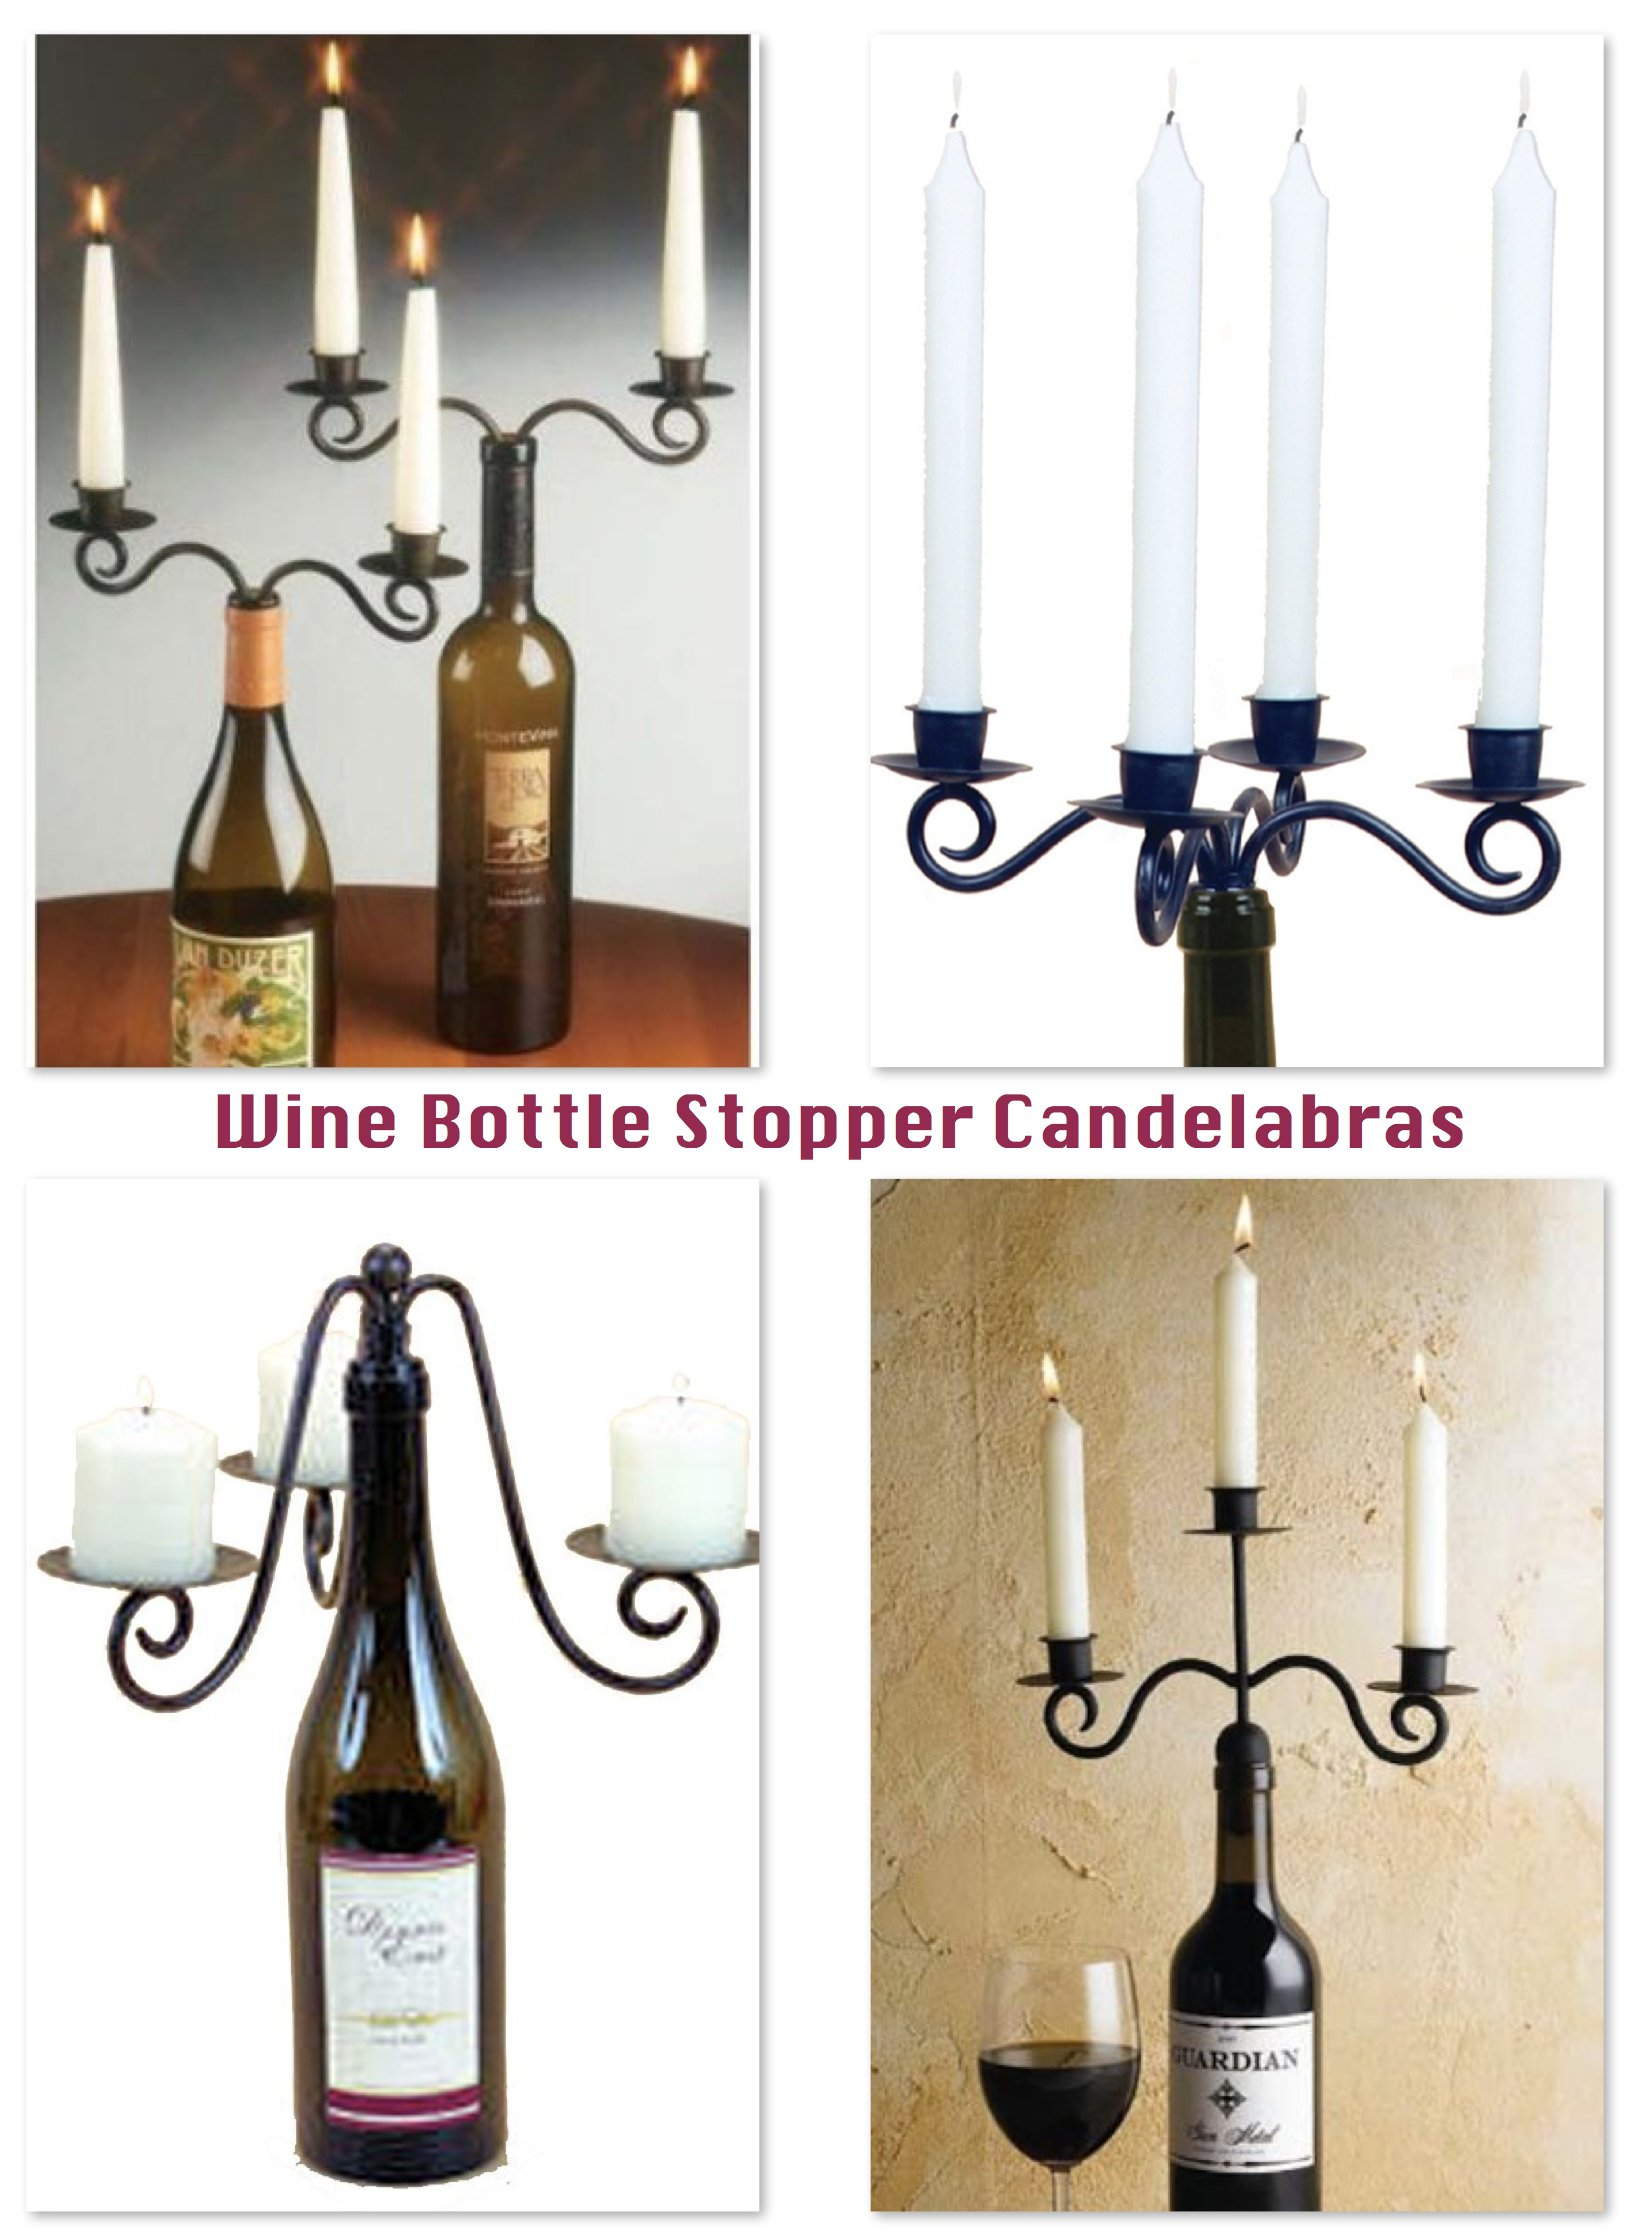 Wine Bottle Stopper Candelabras